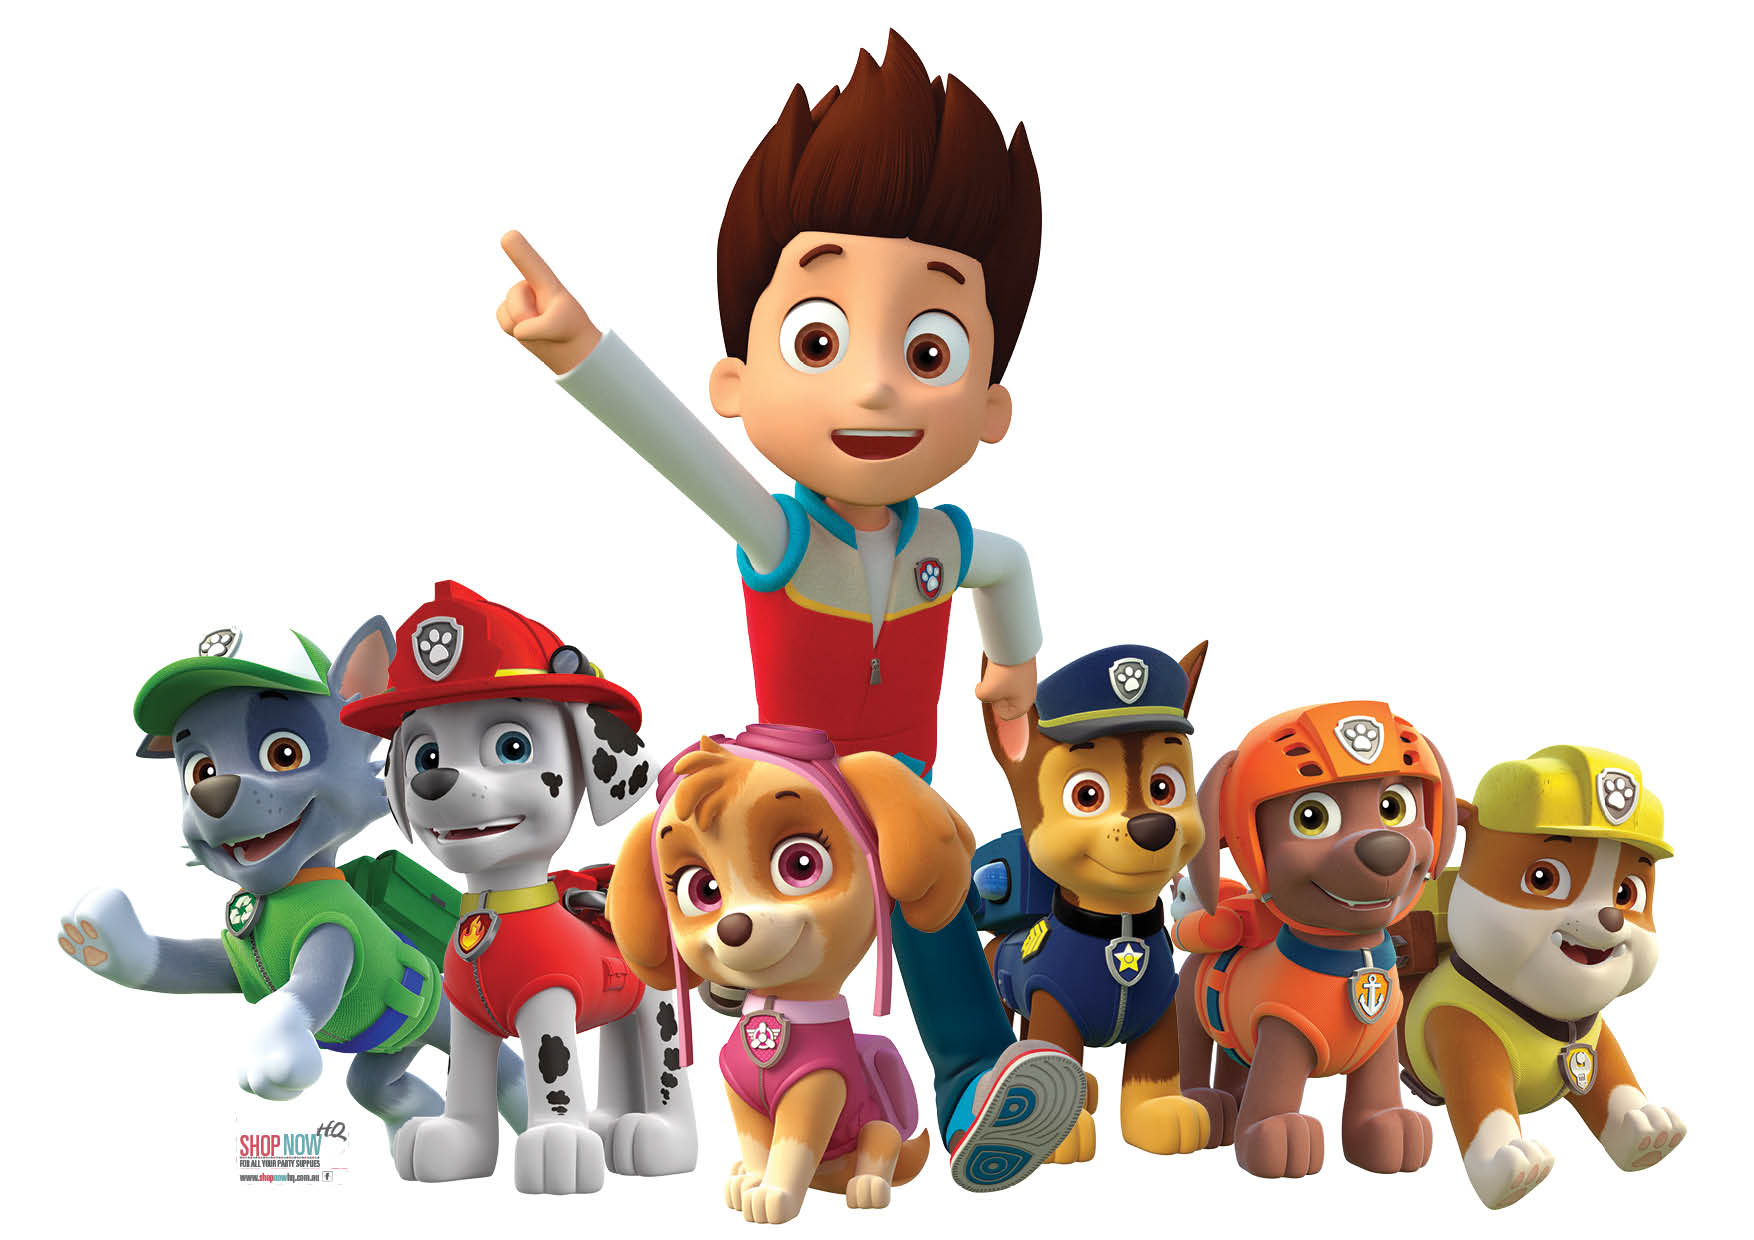 Paw patrol background clipart picture free stock Selected Intelligence — Paw Patrol as a metaphor for startup culture picture free stock